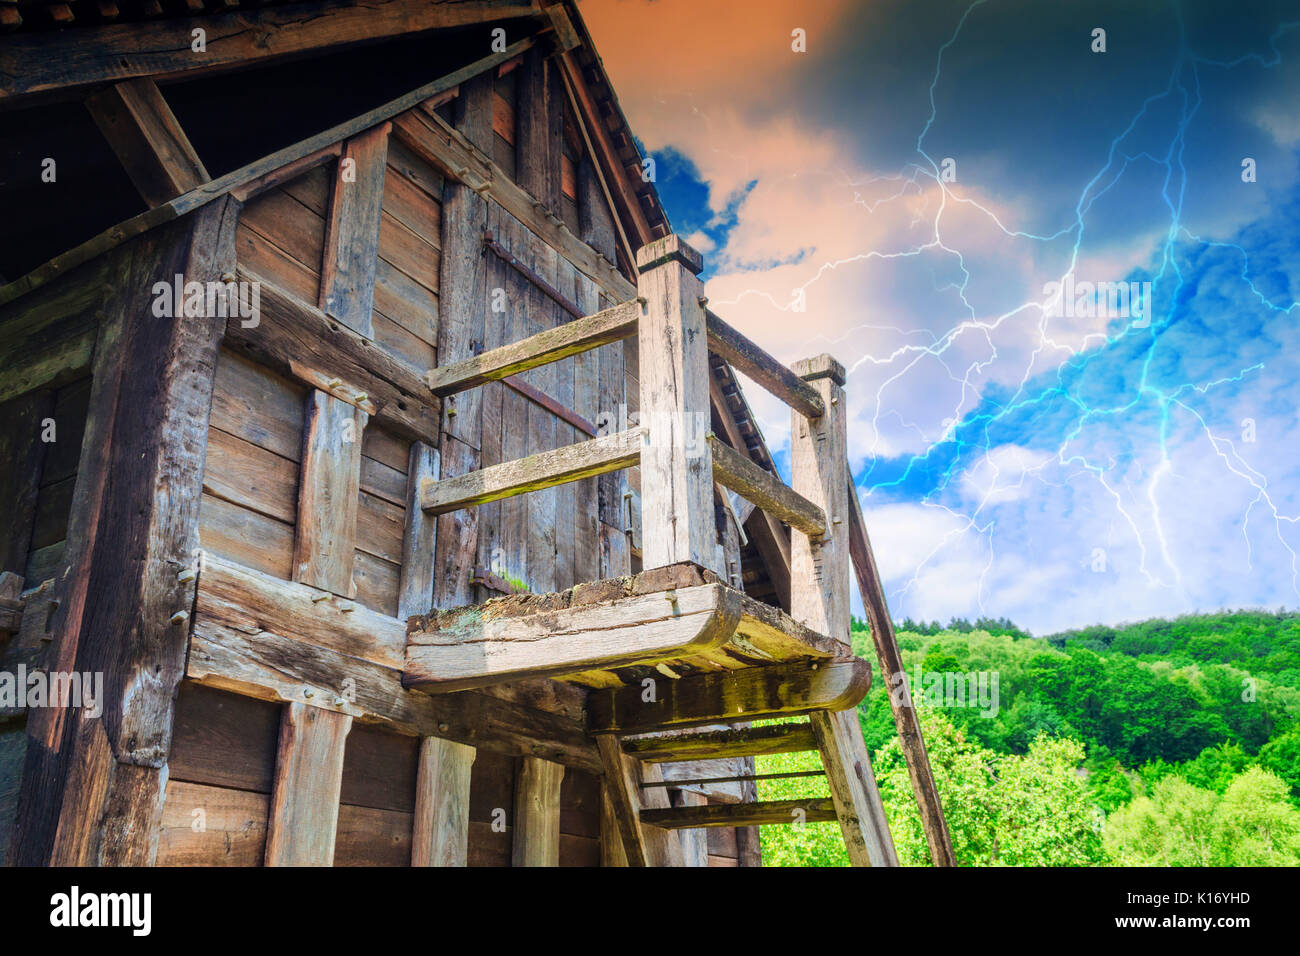 Idyllic Alpine shelter or chalet in summer on a mountain meadow during thunderstorm. Stock Photo